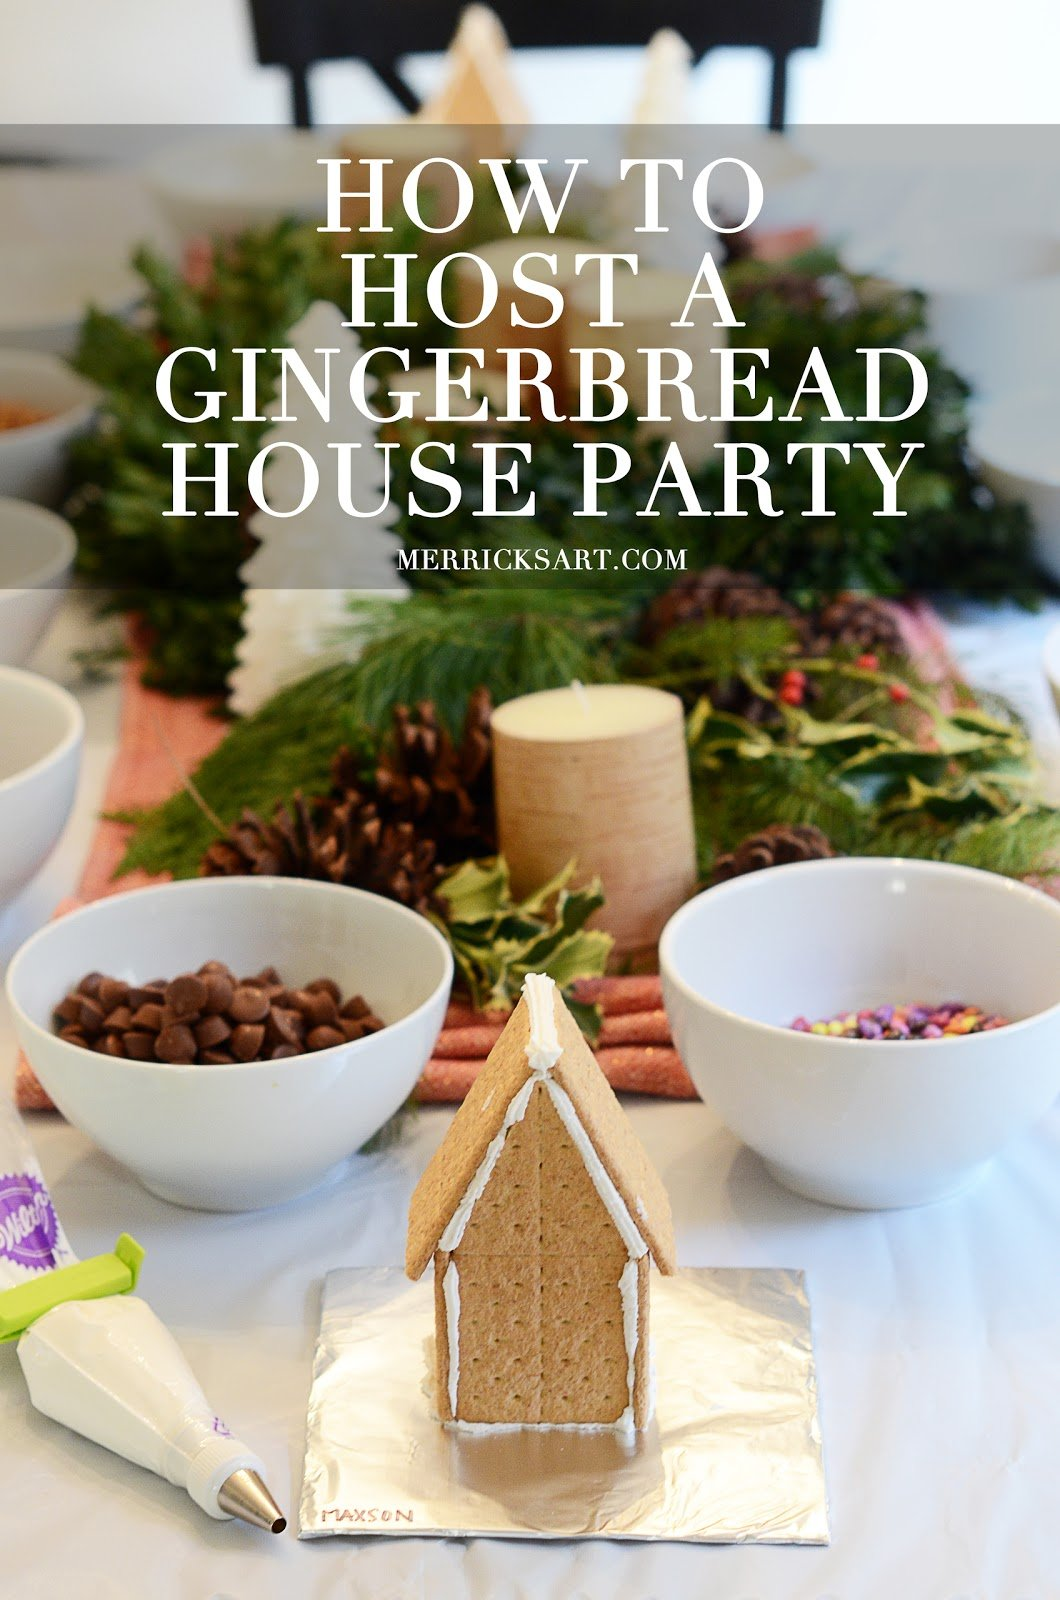 gingerbread house with text for pinterest